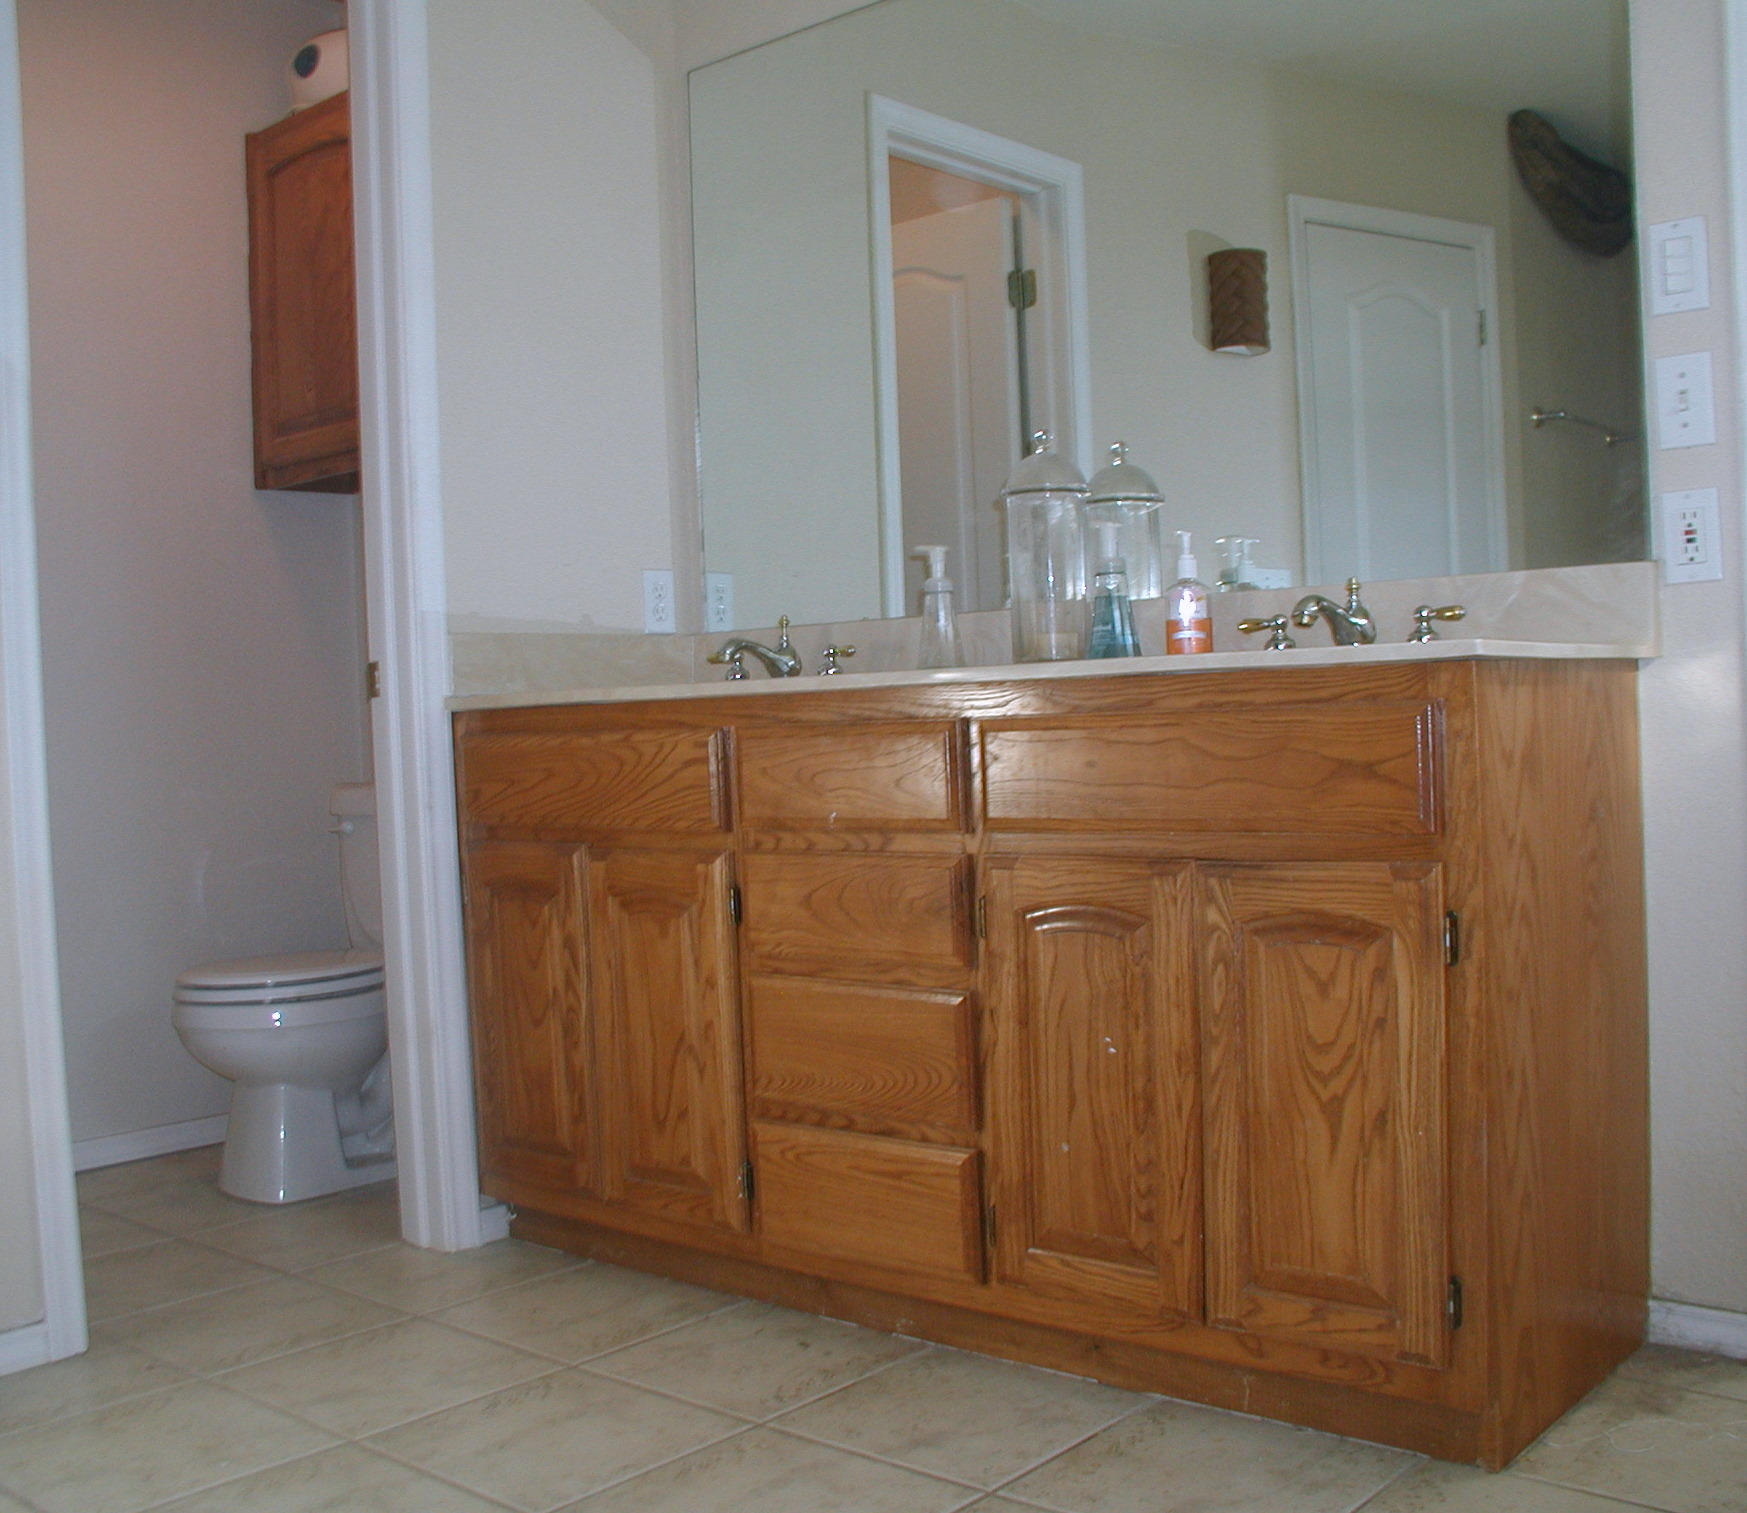 Project transforming builder grade cabinets to old world Paint bathroom cabinets